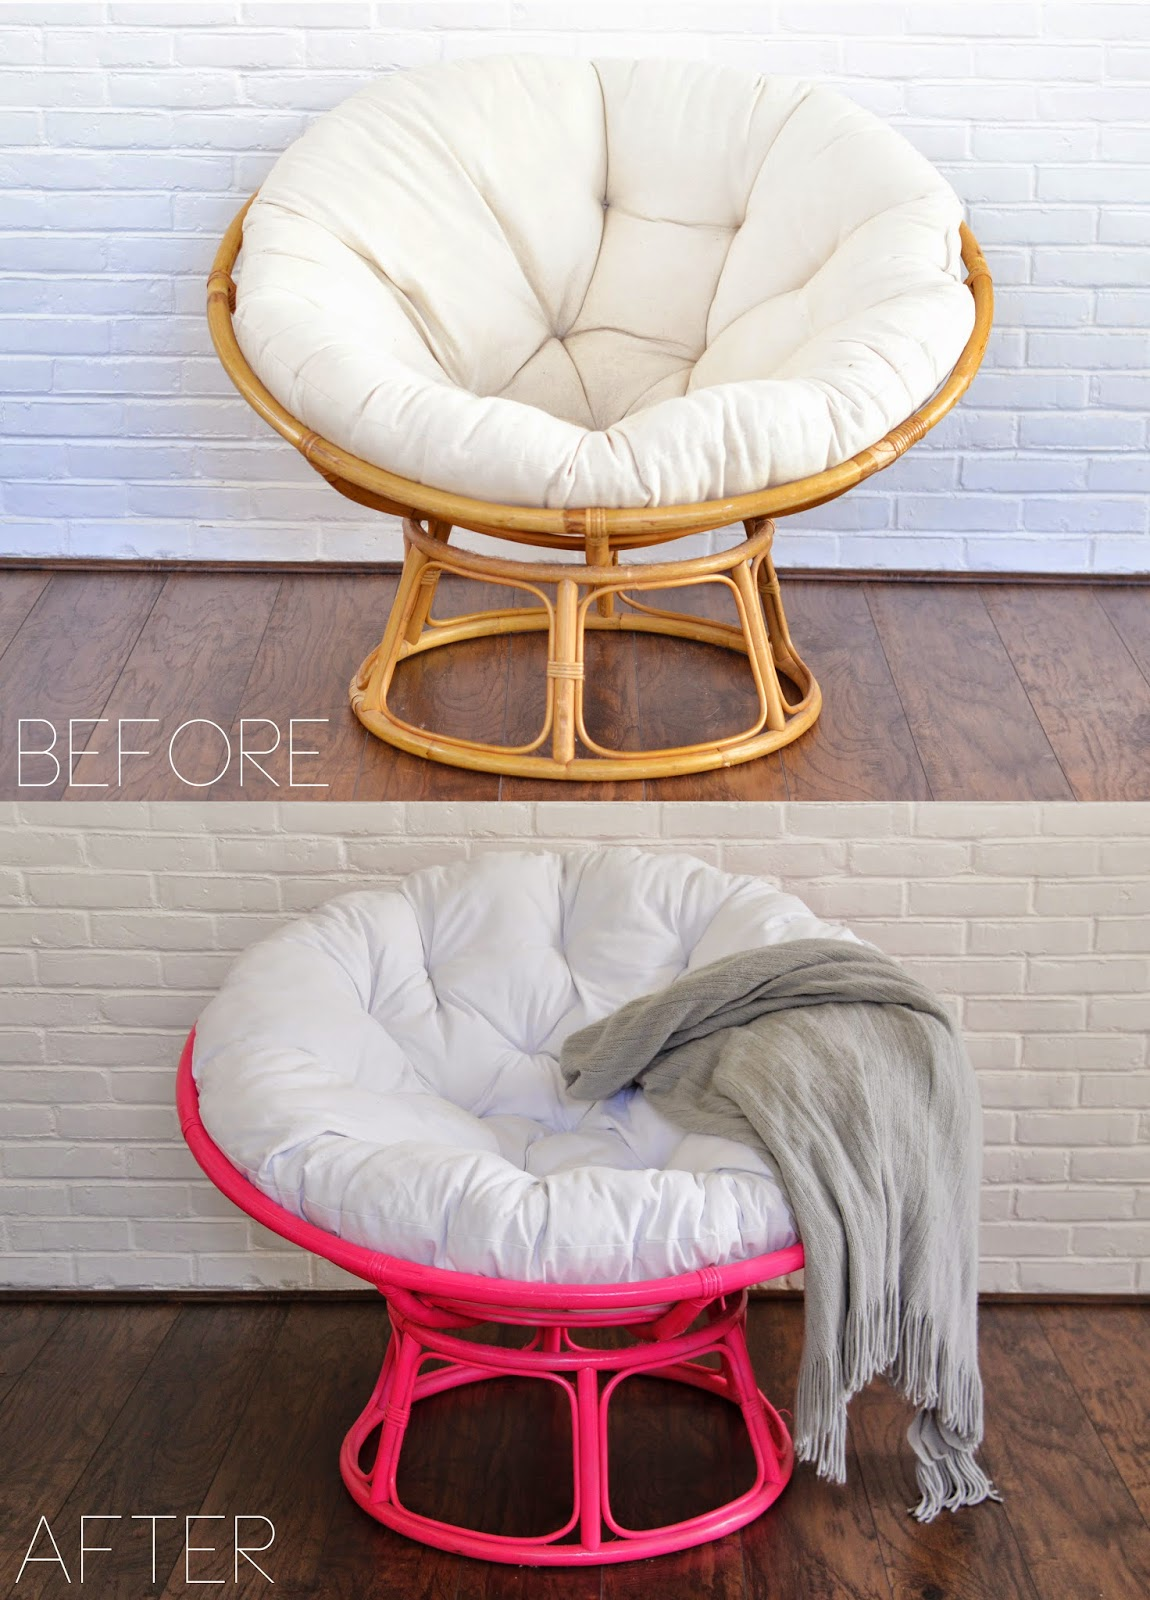 Wonderful Papasan Chairs Are Supremely Comfortable, But Their Style Never Seems To  Mesh Well With Most Interiors. We Had This Light Wood Papasan Chair With A  Worn ...